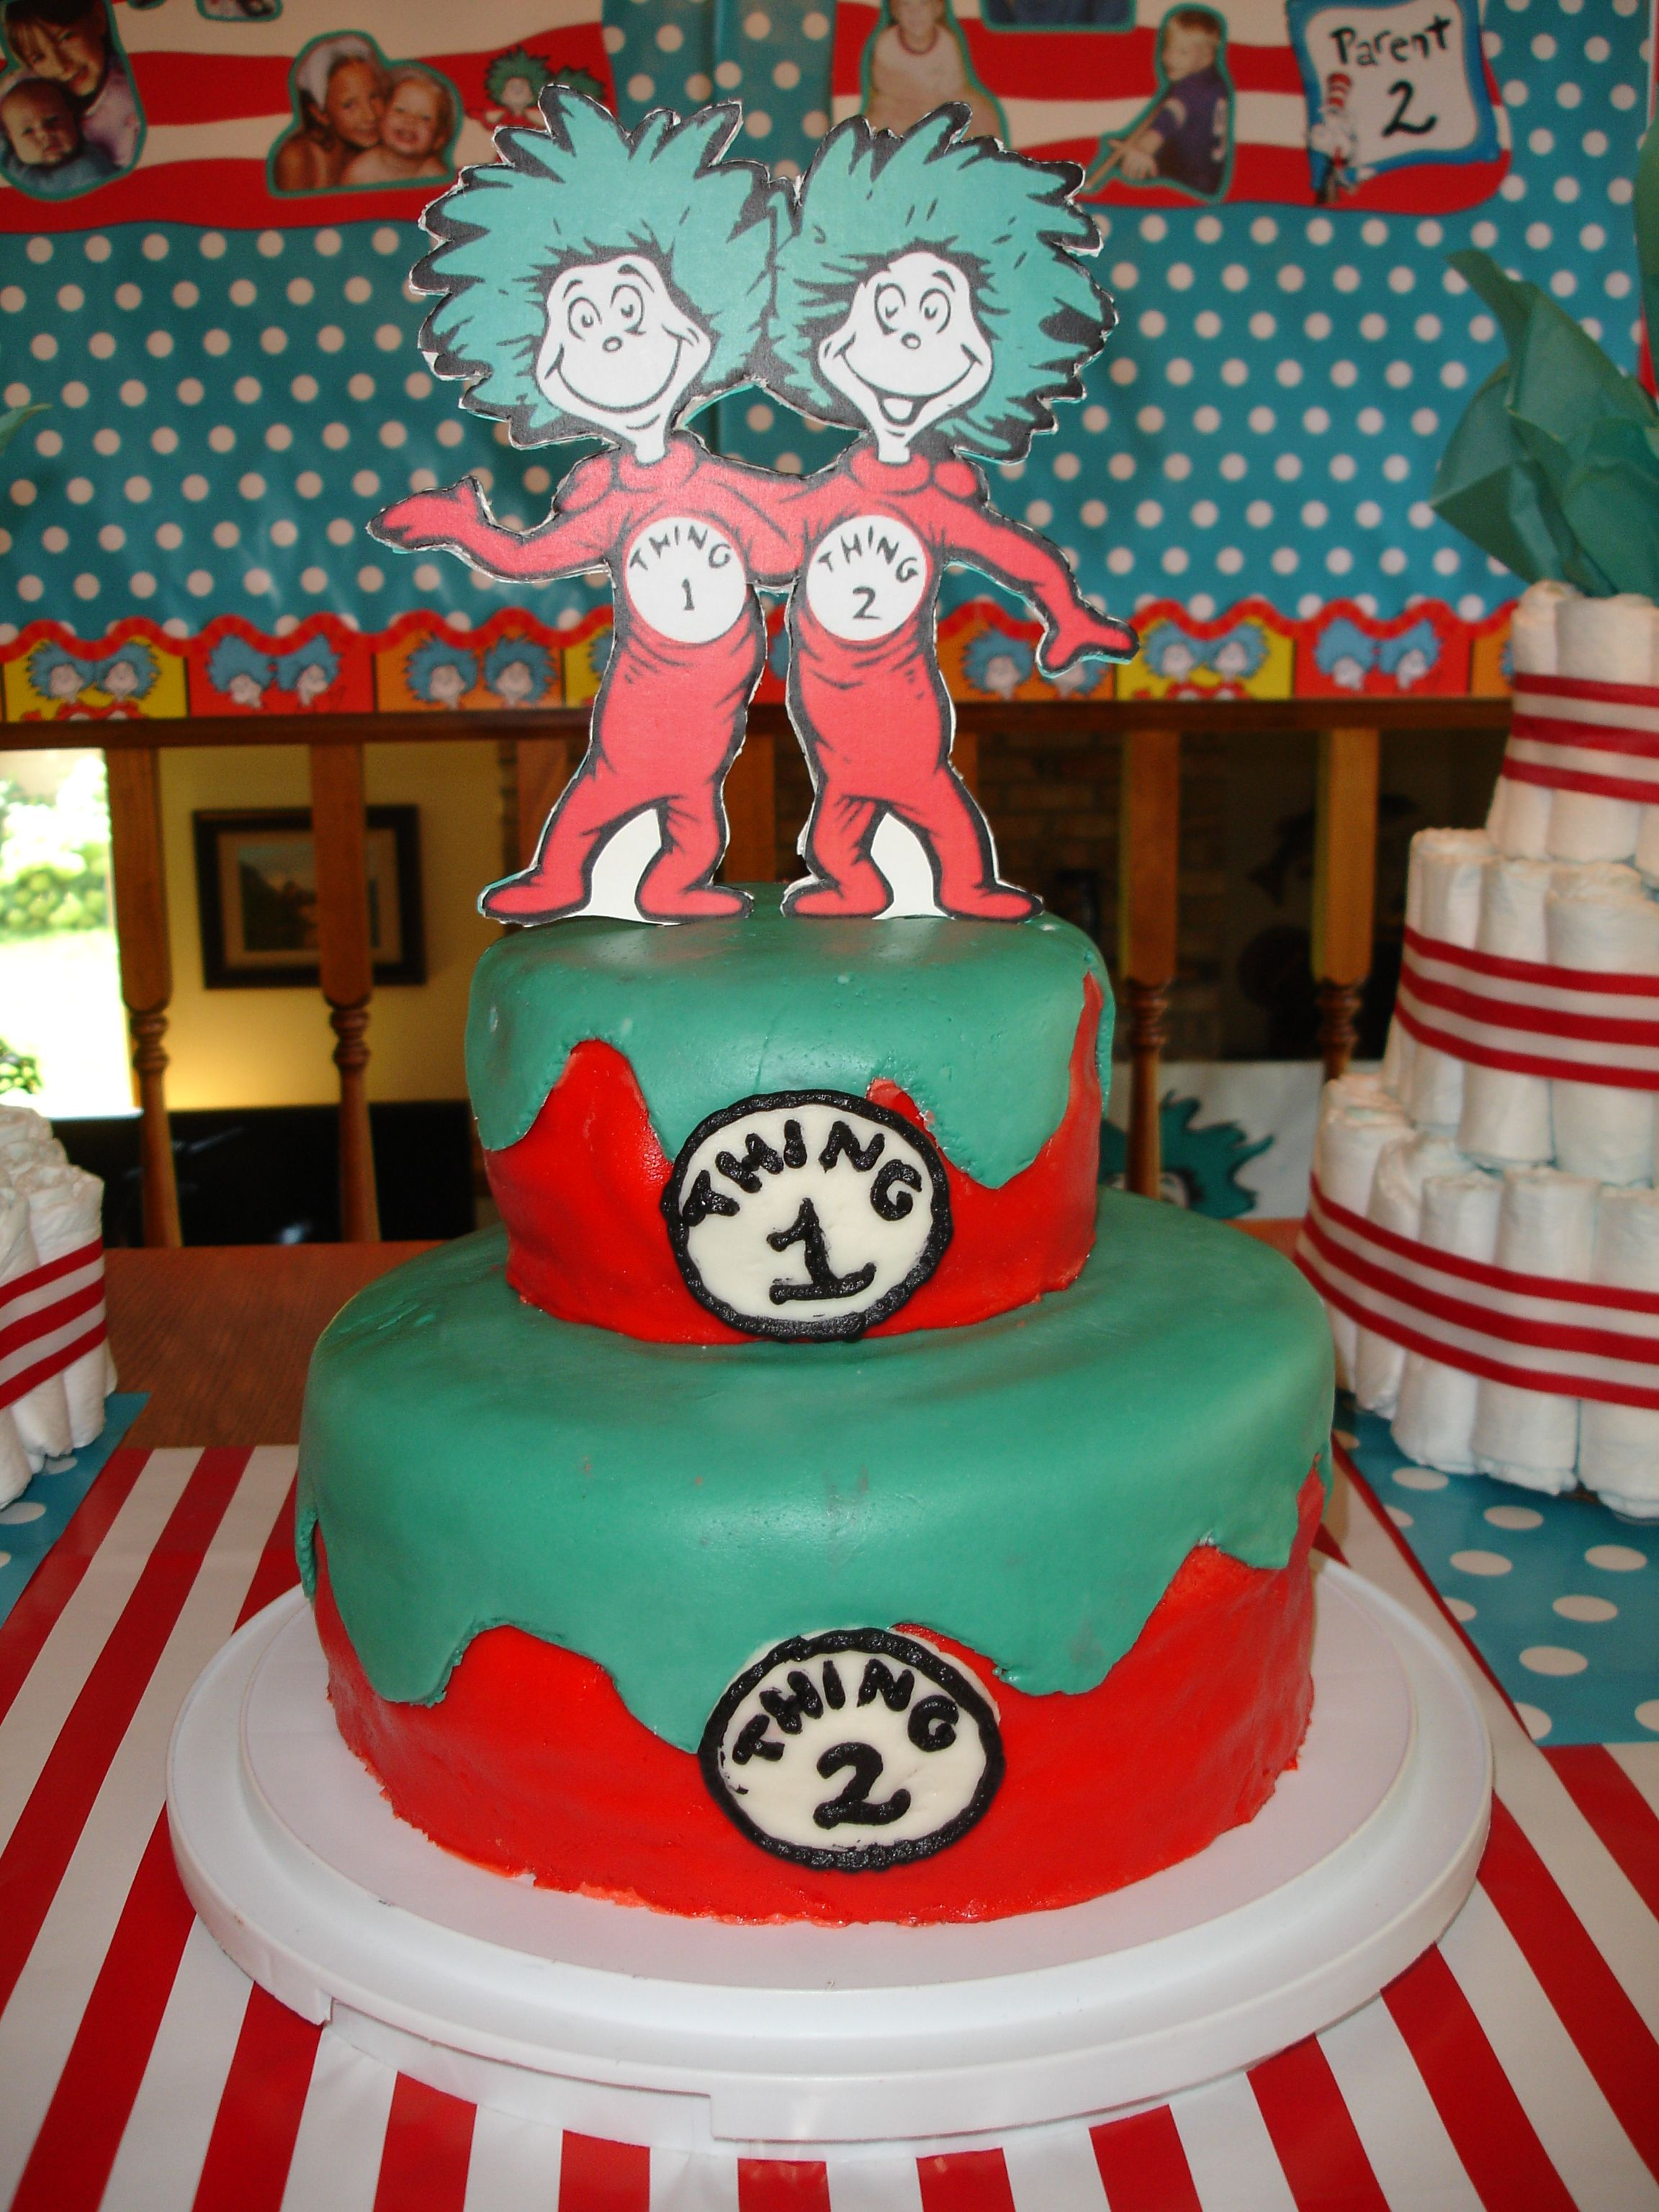 Thing 1 & Thing 2 Cake for a Baby Shower for Twins